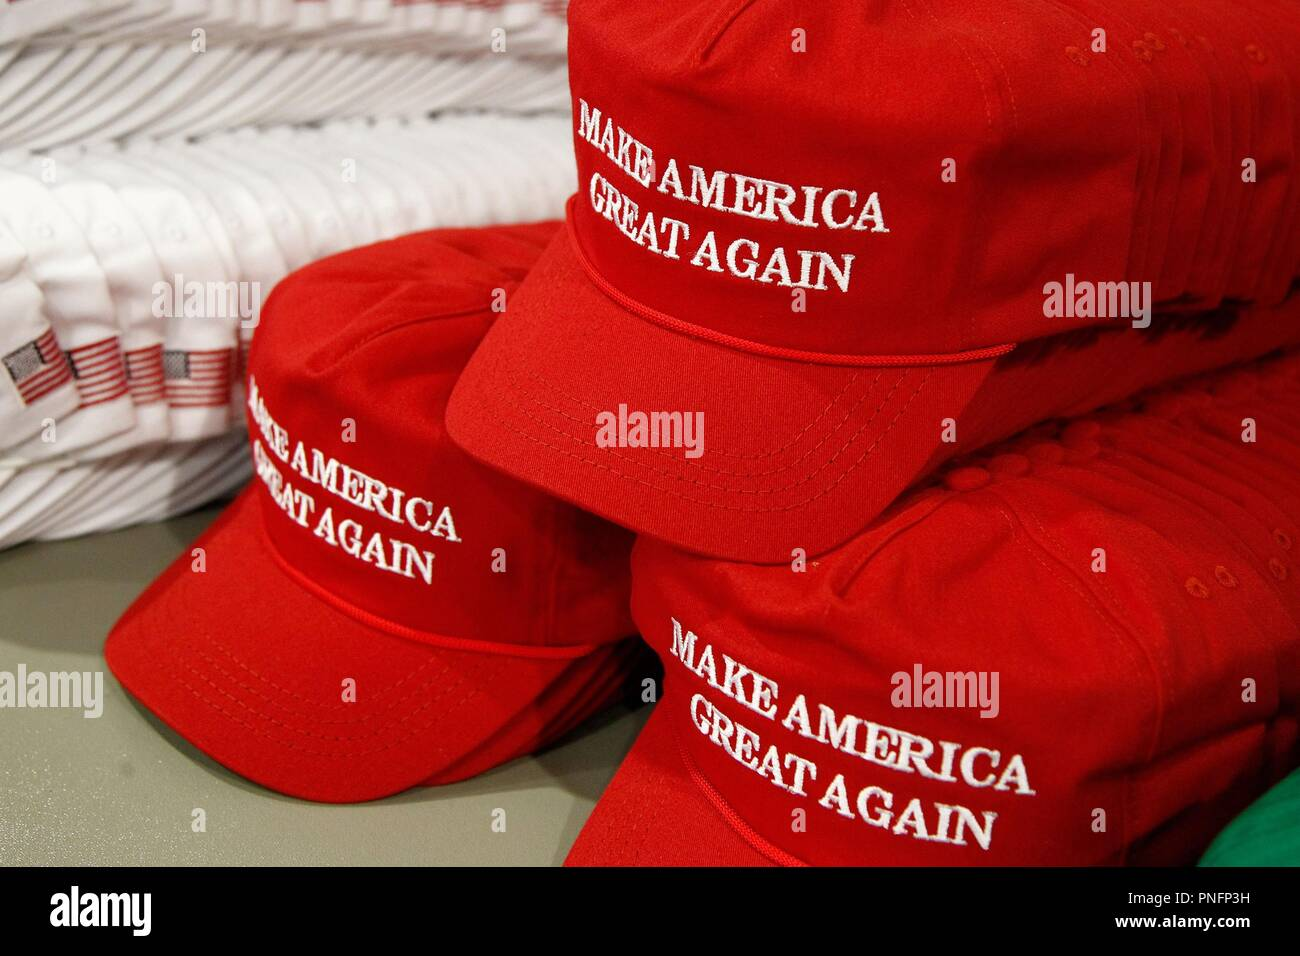 0a7490bf Donald Trump 'Make America Great Again' hats at a public appearance for  President Donald